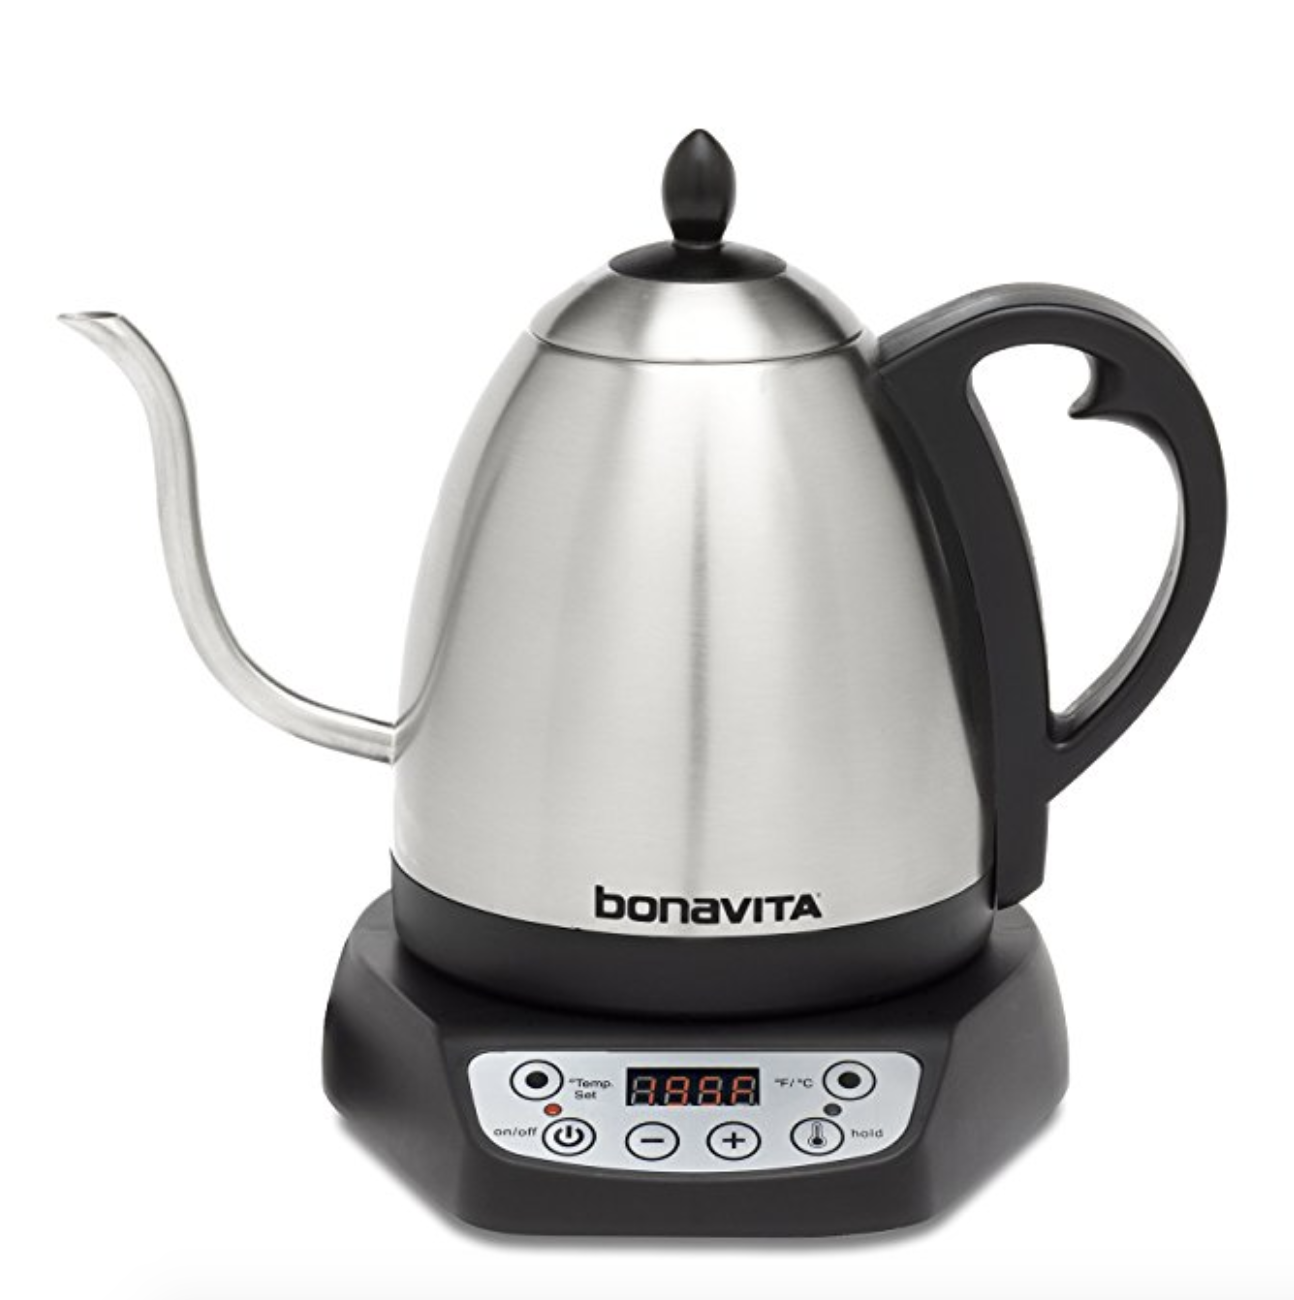 Bonavita Electric Kettle    Another product we use every single day! My boyfriend likes it because you can set the temperature to an  exact  degree (206 for the perfect pour over coffee), and I like it because it makes me feel fancy every time I make a hot drink (which is very often). It's also speedy and looks good on your countertop.